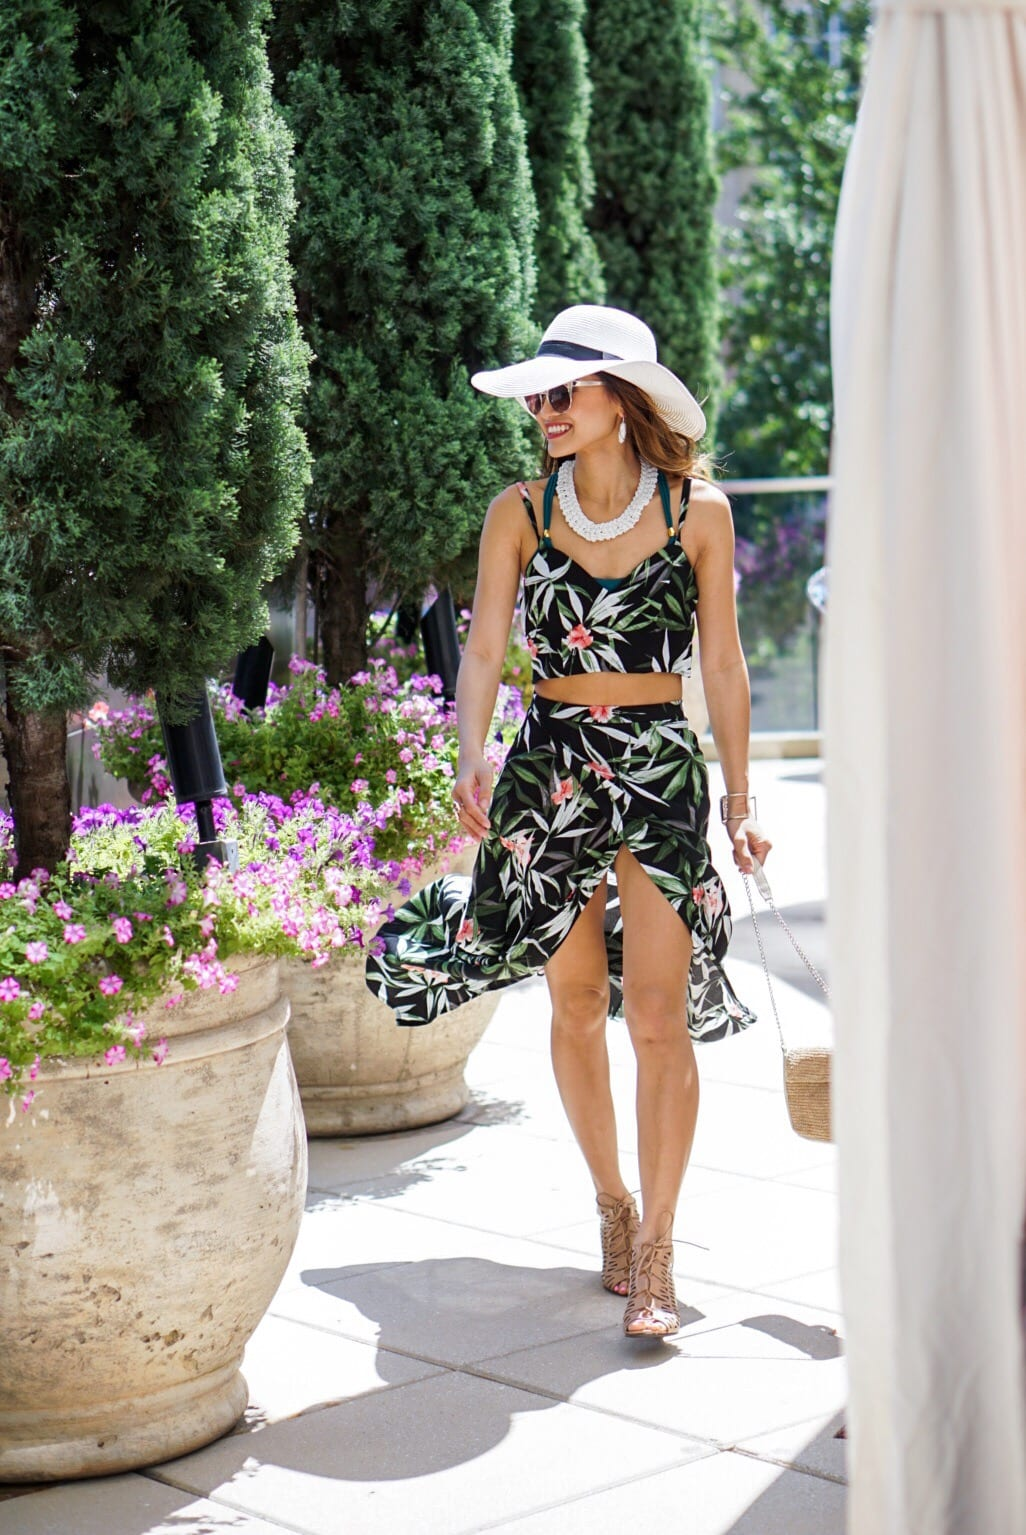 Summer Trend Alert: Palm Prints & Two Piece Sets